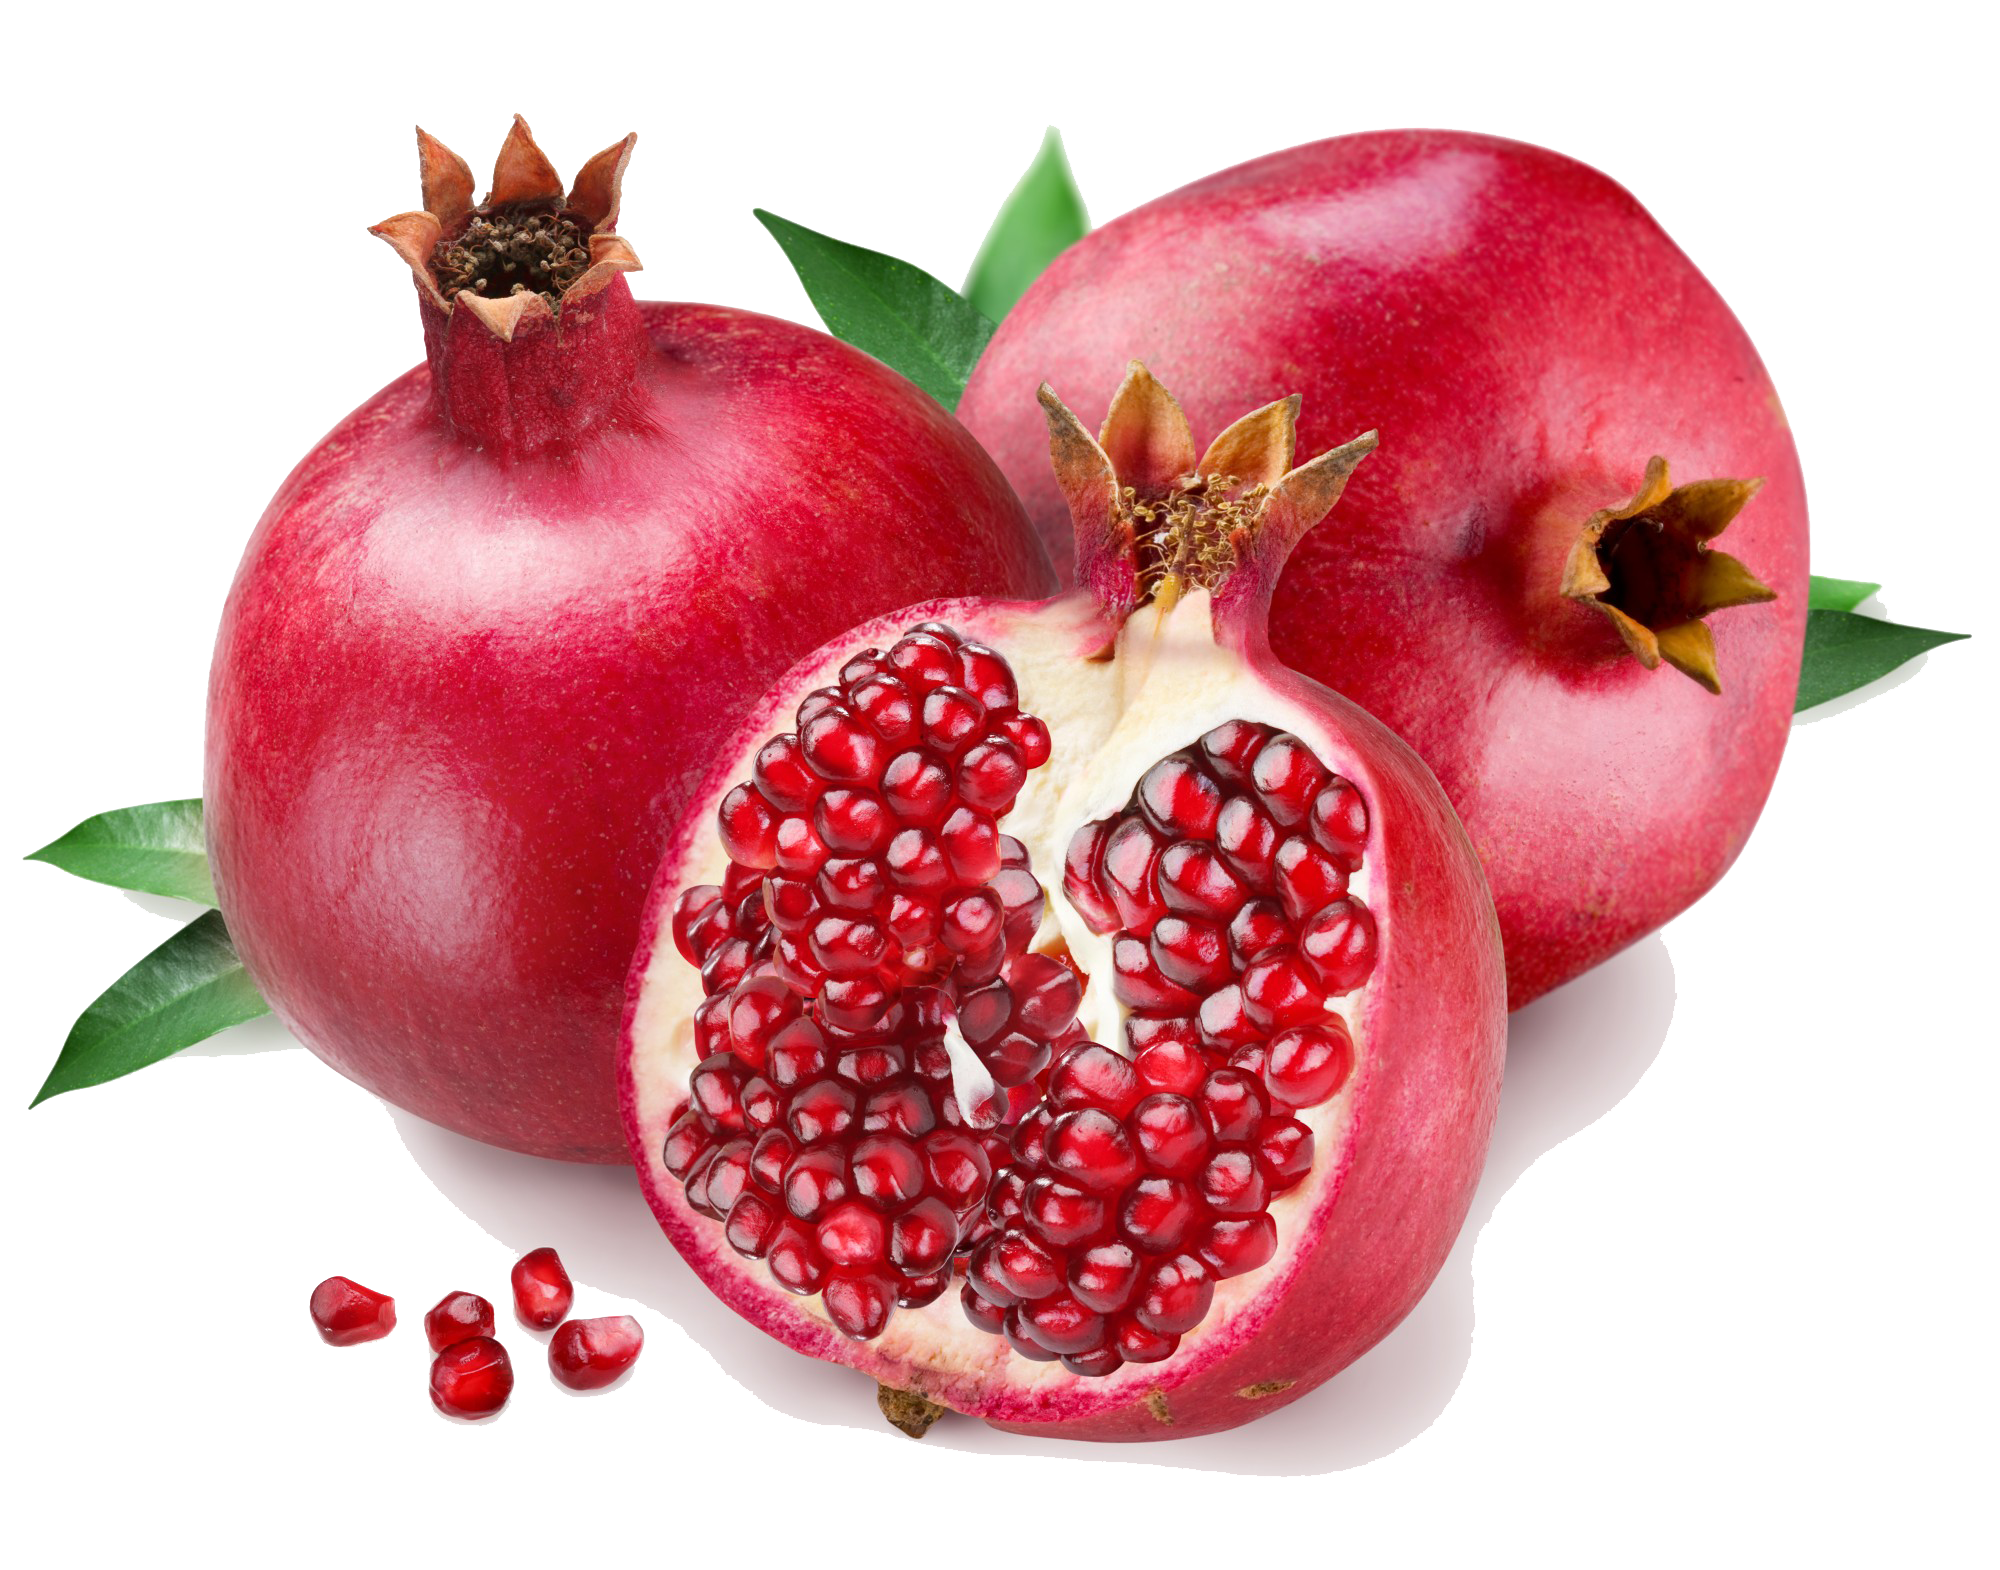 Png transparent images all. Fruits clipart pomegranate